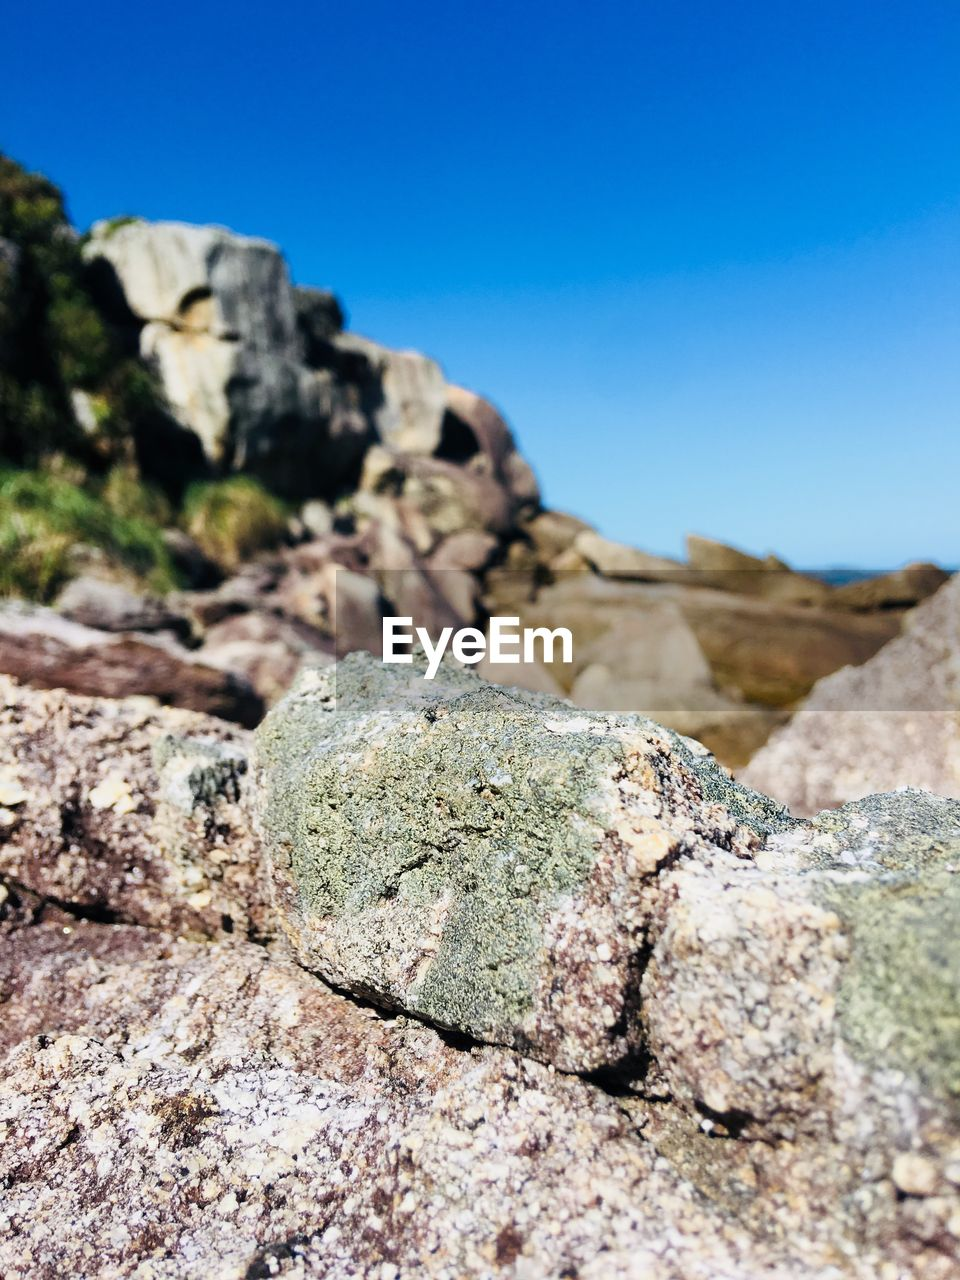 rock, solid, day, rock - object, sky, no people, nature, textured, focus on foreground, close-up, rough, blue, beauty in nature, tranquility, rock formation, outdoors, geology, sunlight, clear sky, selective focus